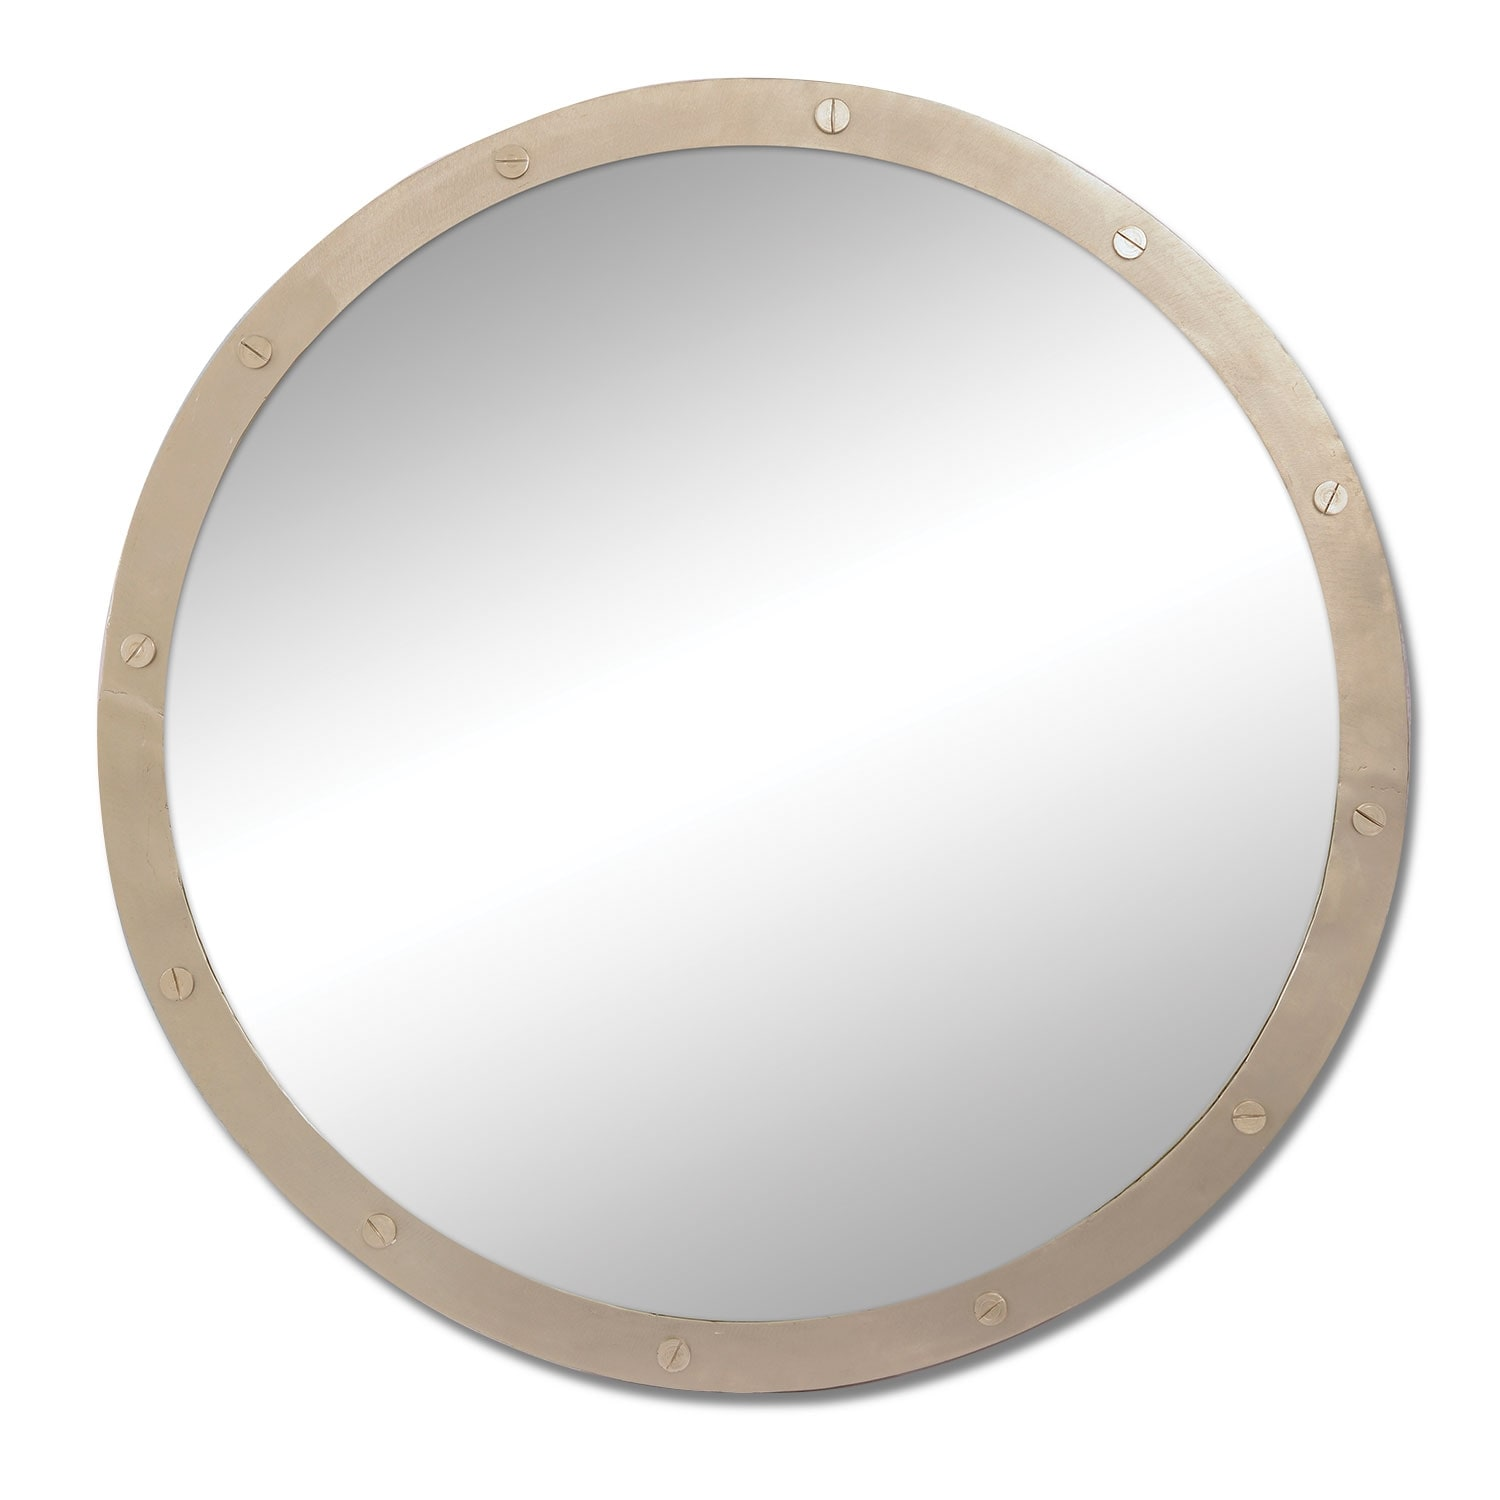 Home Accessories - Hudson Mirror